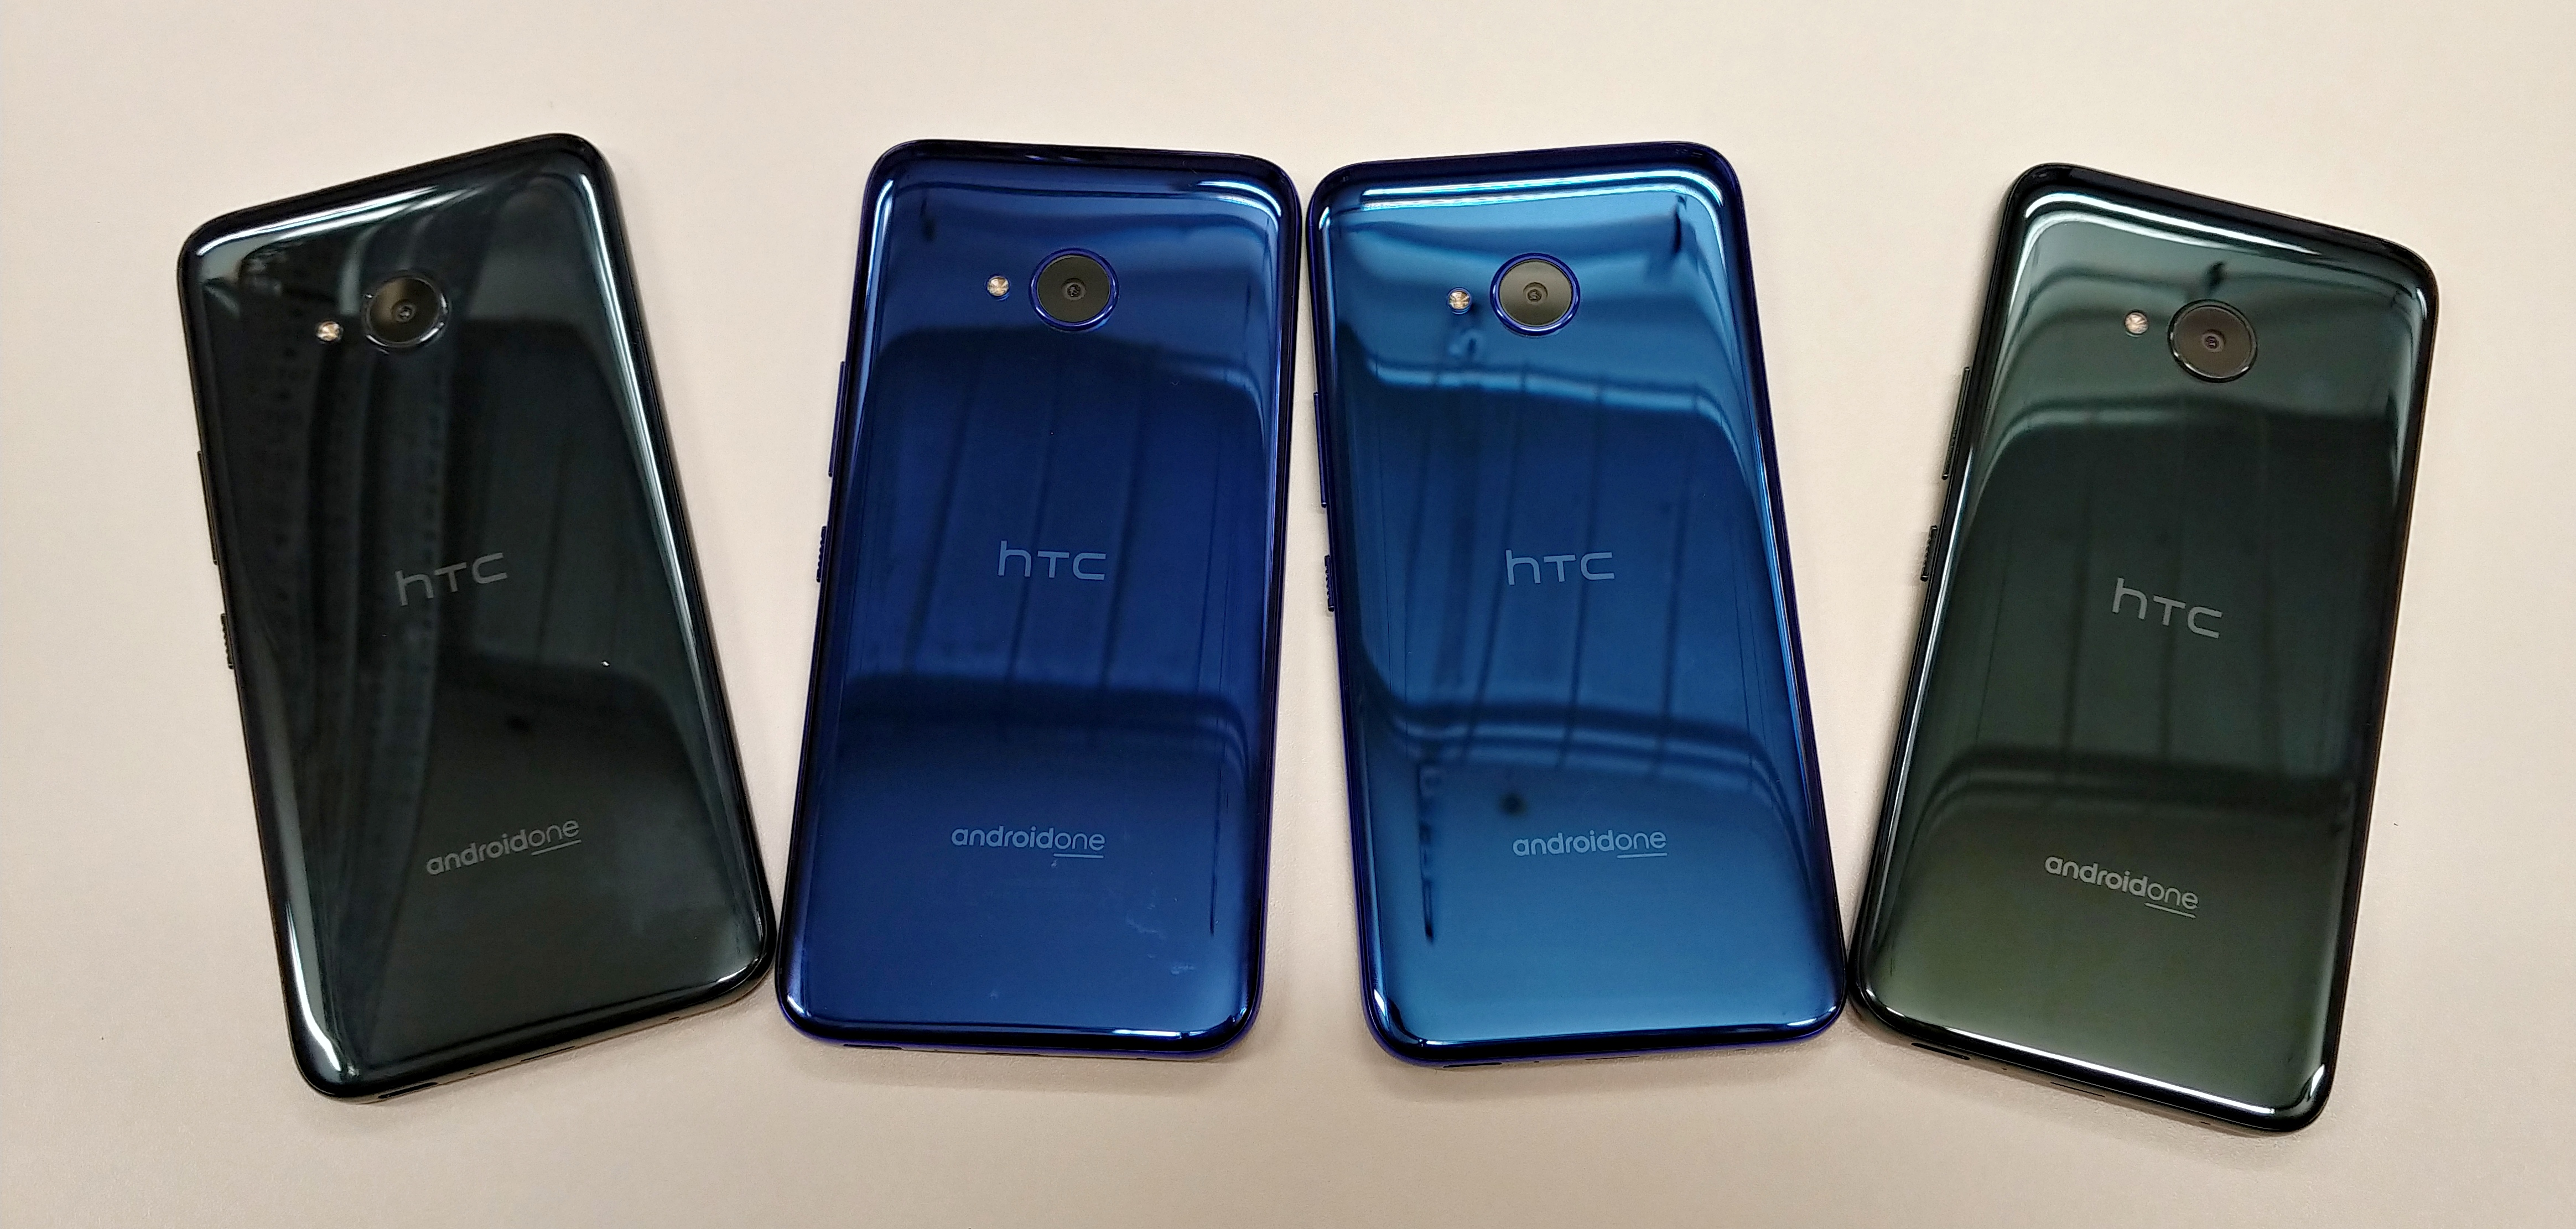 HTC Squeezes the U11 Family, Adding the HTC U11 life